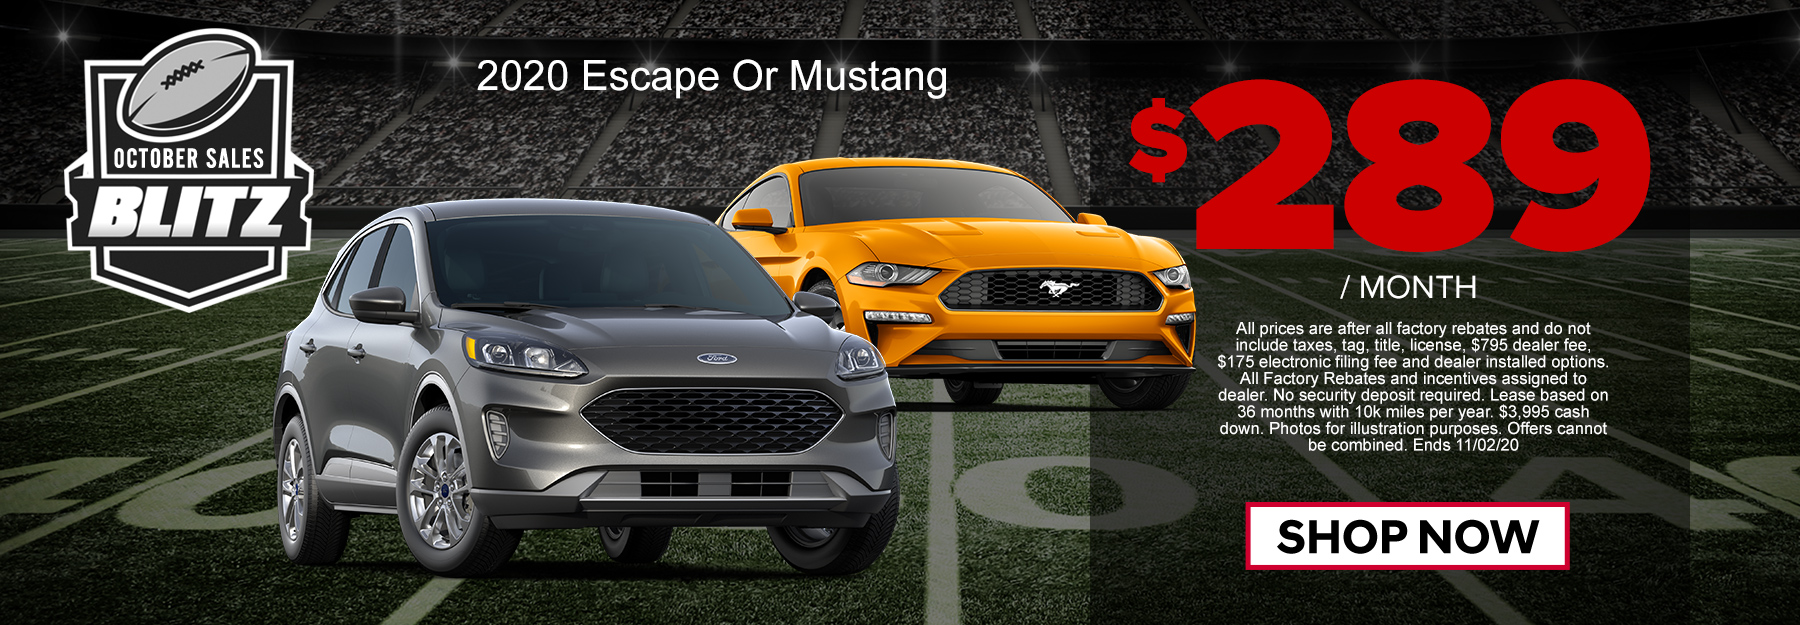 Your Choice! Escape or Mustang $289/mo